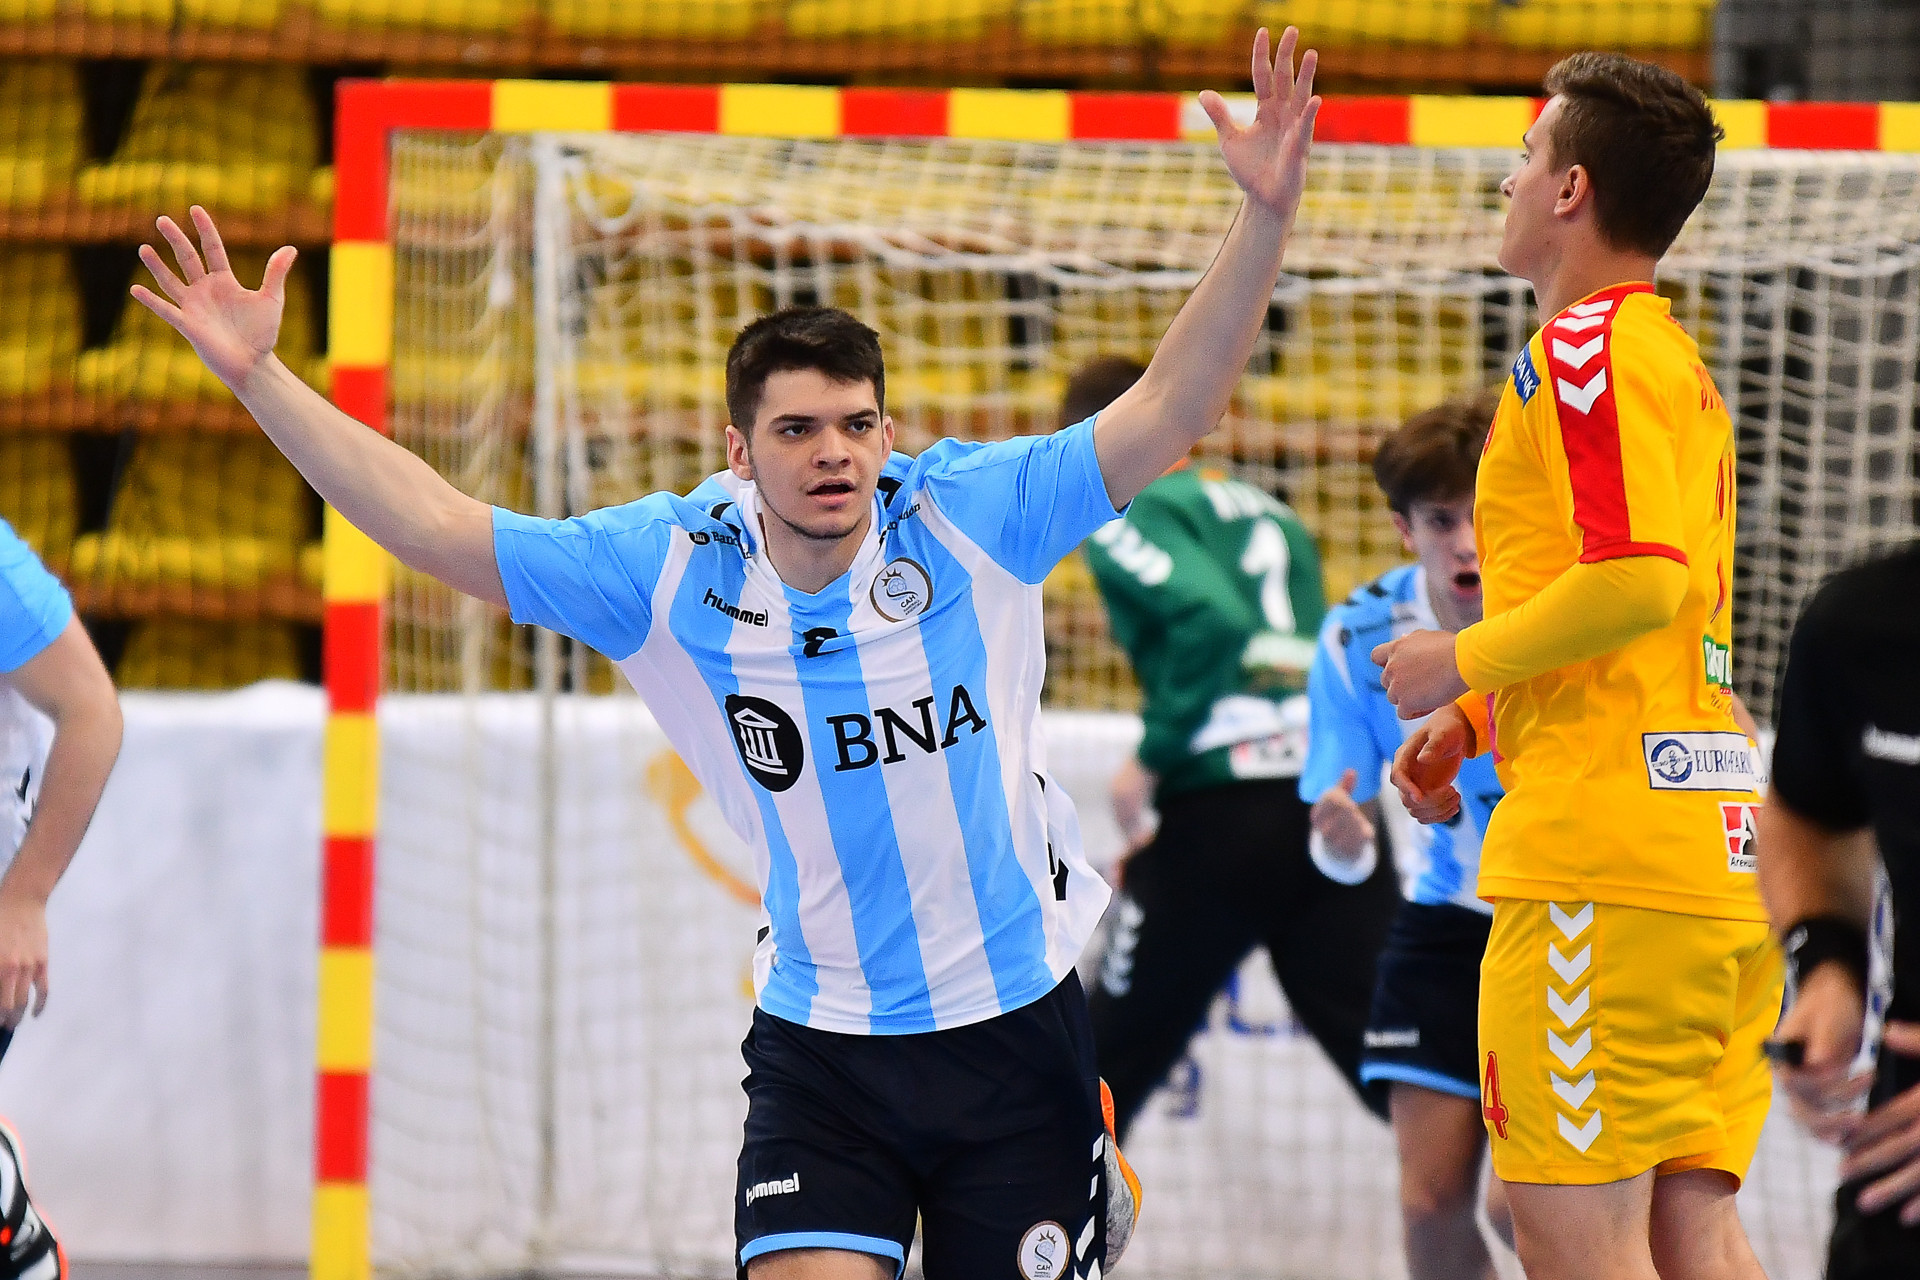 Argentina subjected hosts North Macedonia to a day one defeat ©IHF